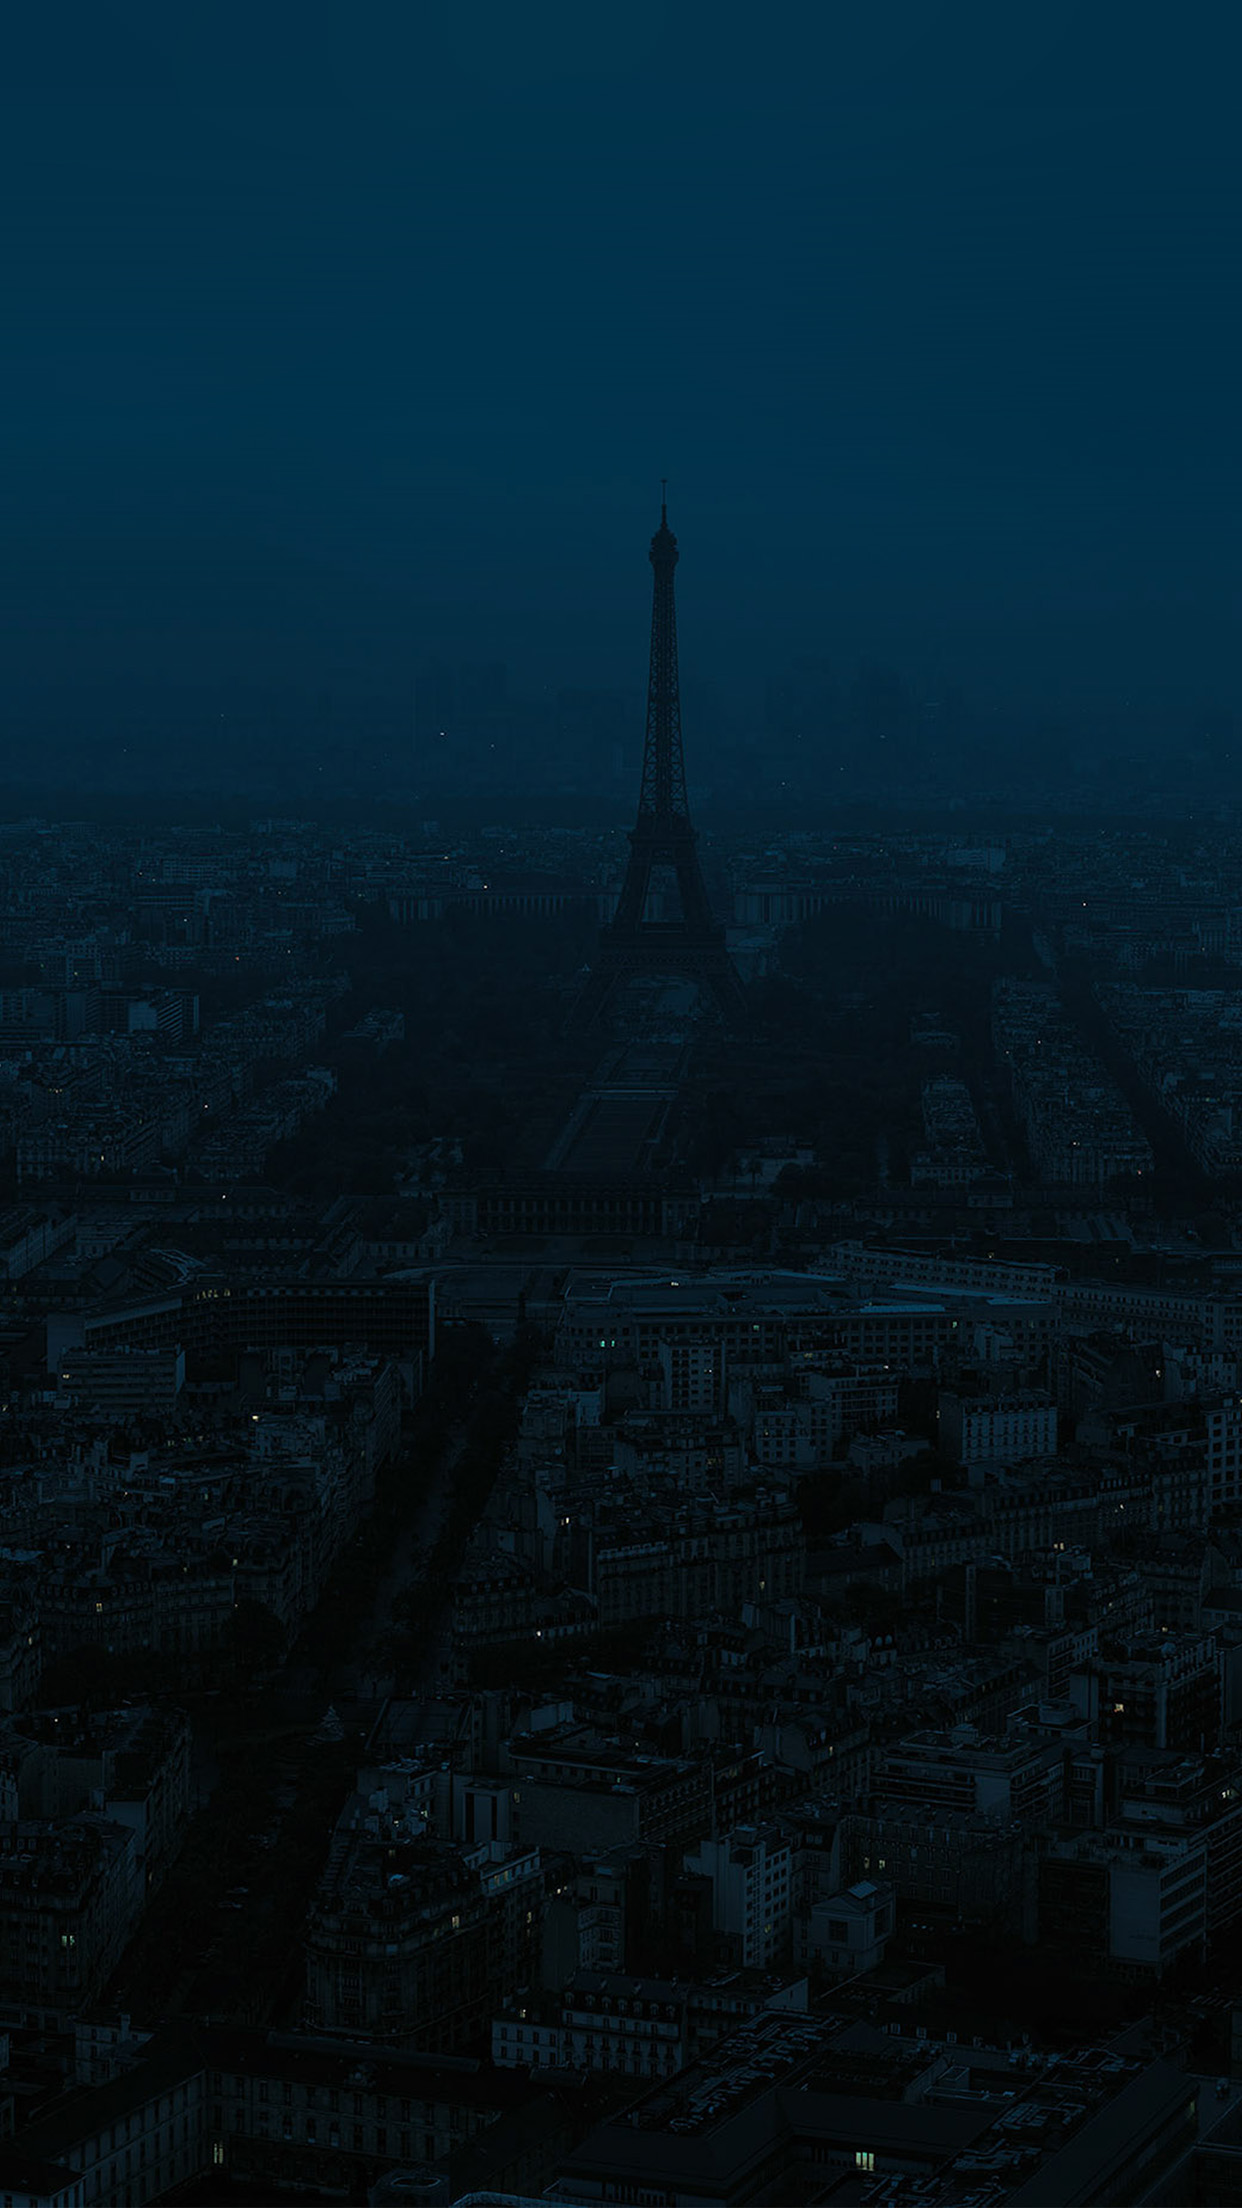 bb42-paris-dark-blue-city-illustration-art-wallpaper